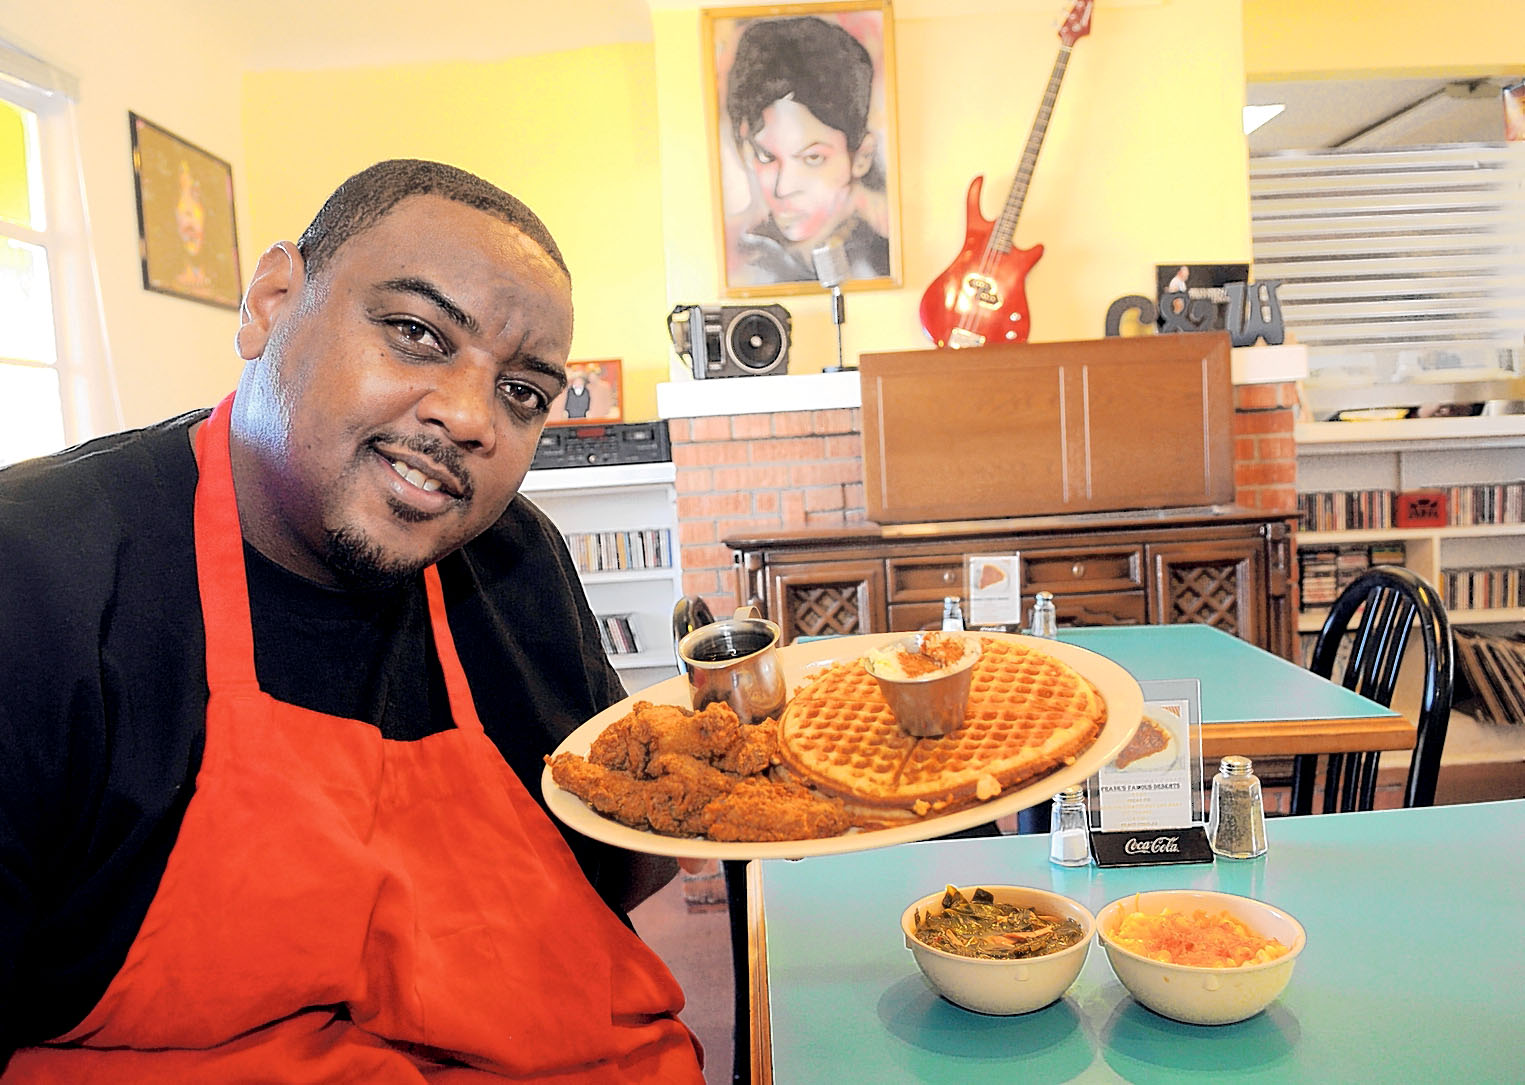 Eatery Owner Puts Heart Soul Into Food Albuquerque Journal